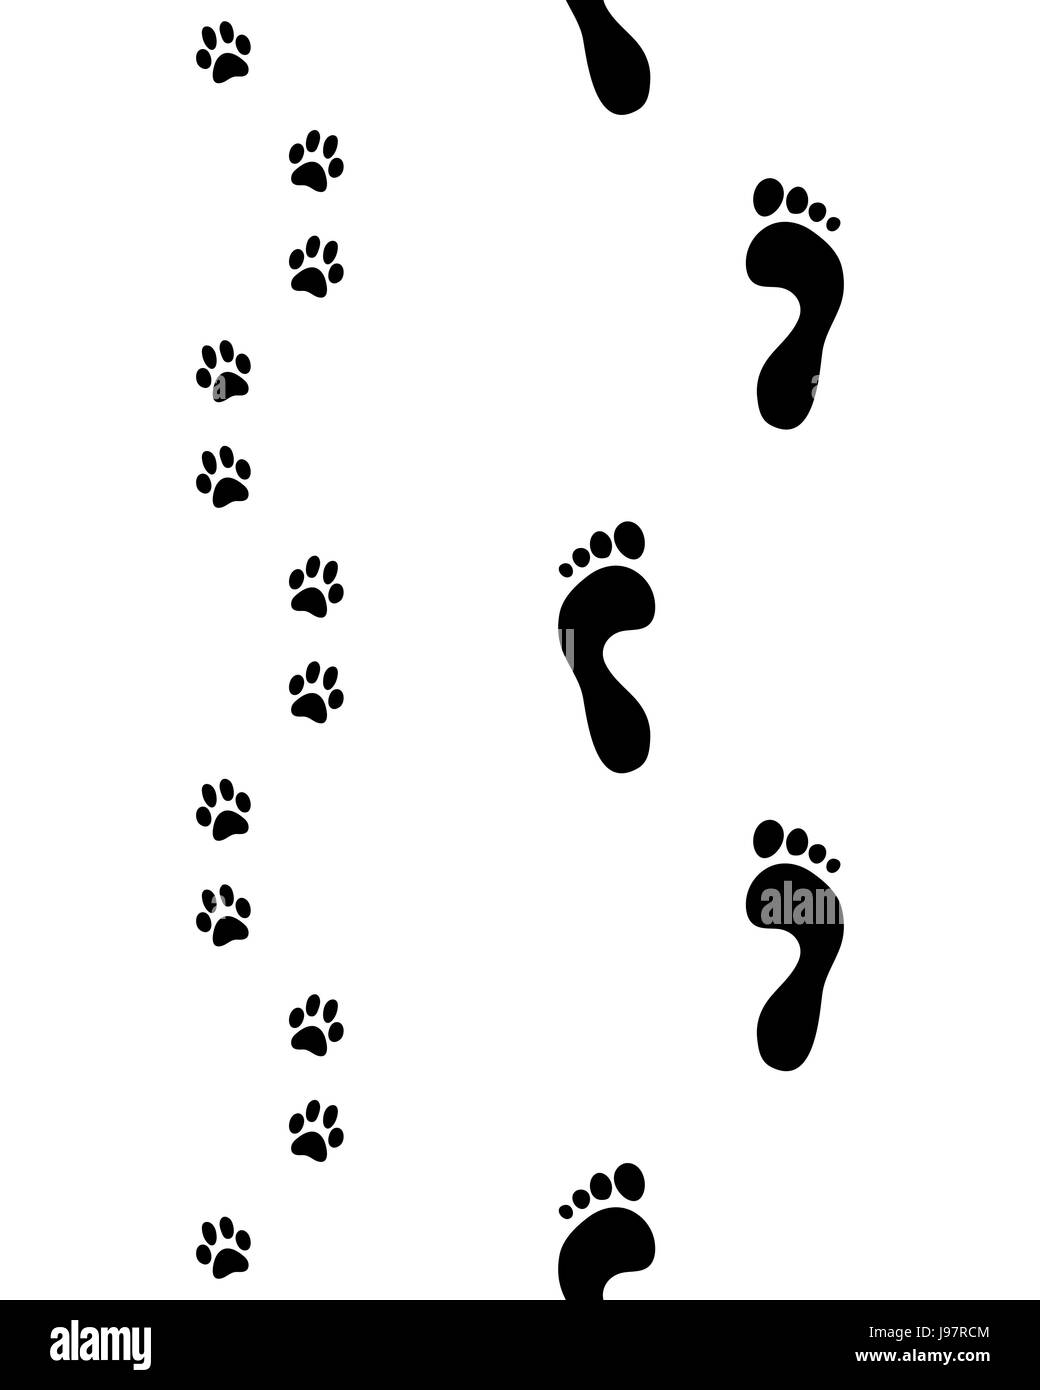 Prints of human feet and dog paws,seamless pattern, vector - Stock Image